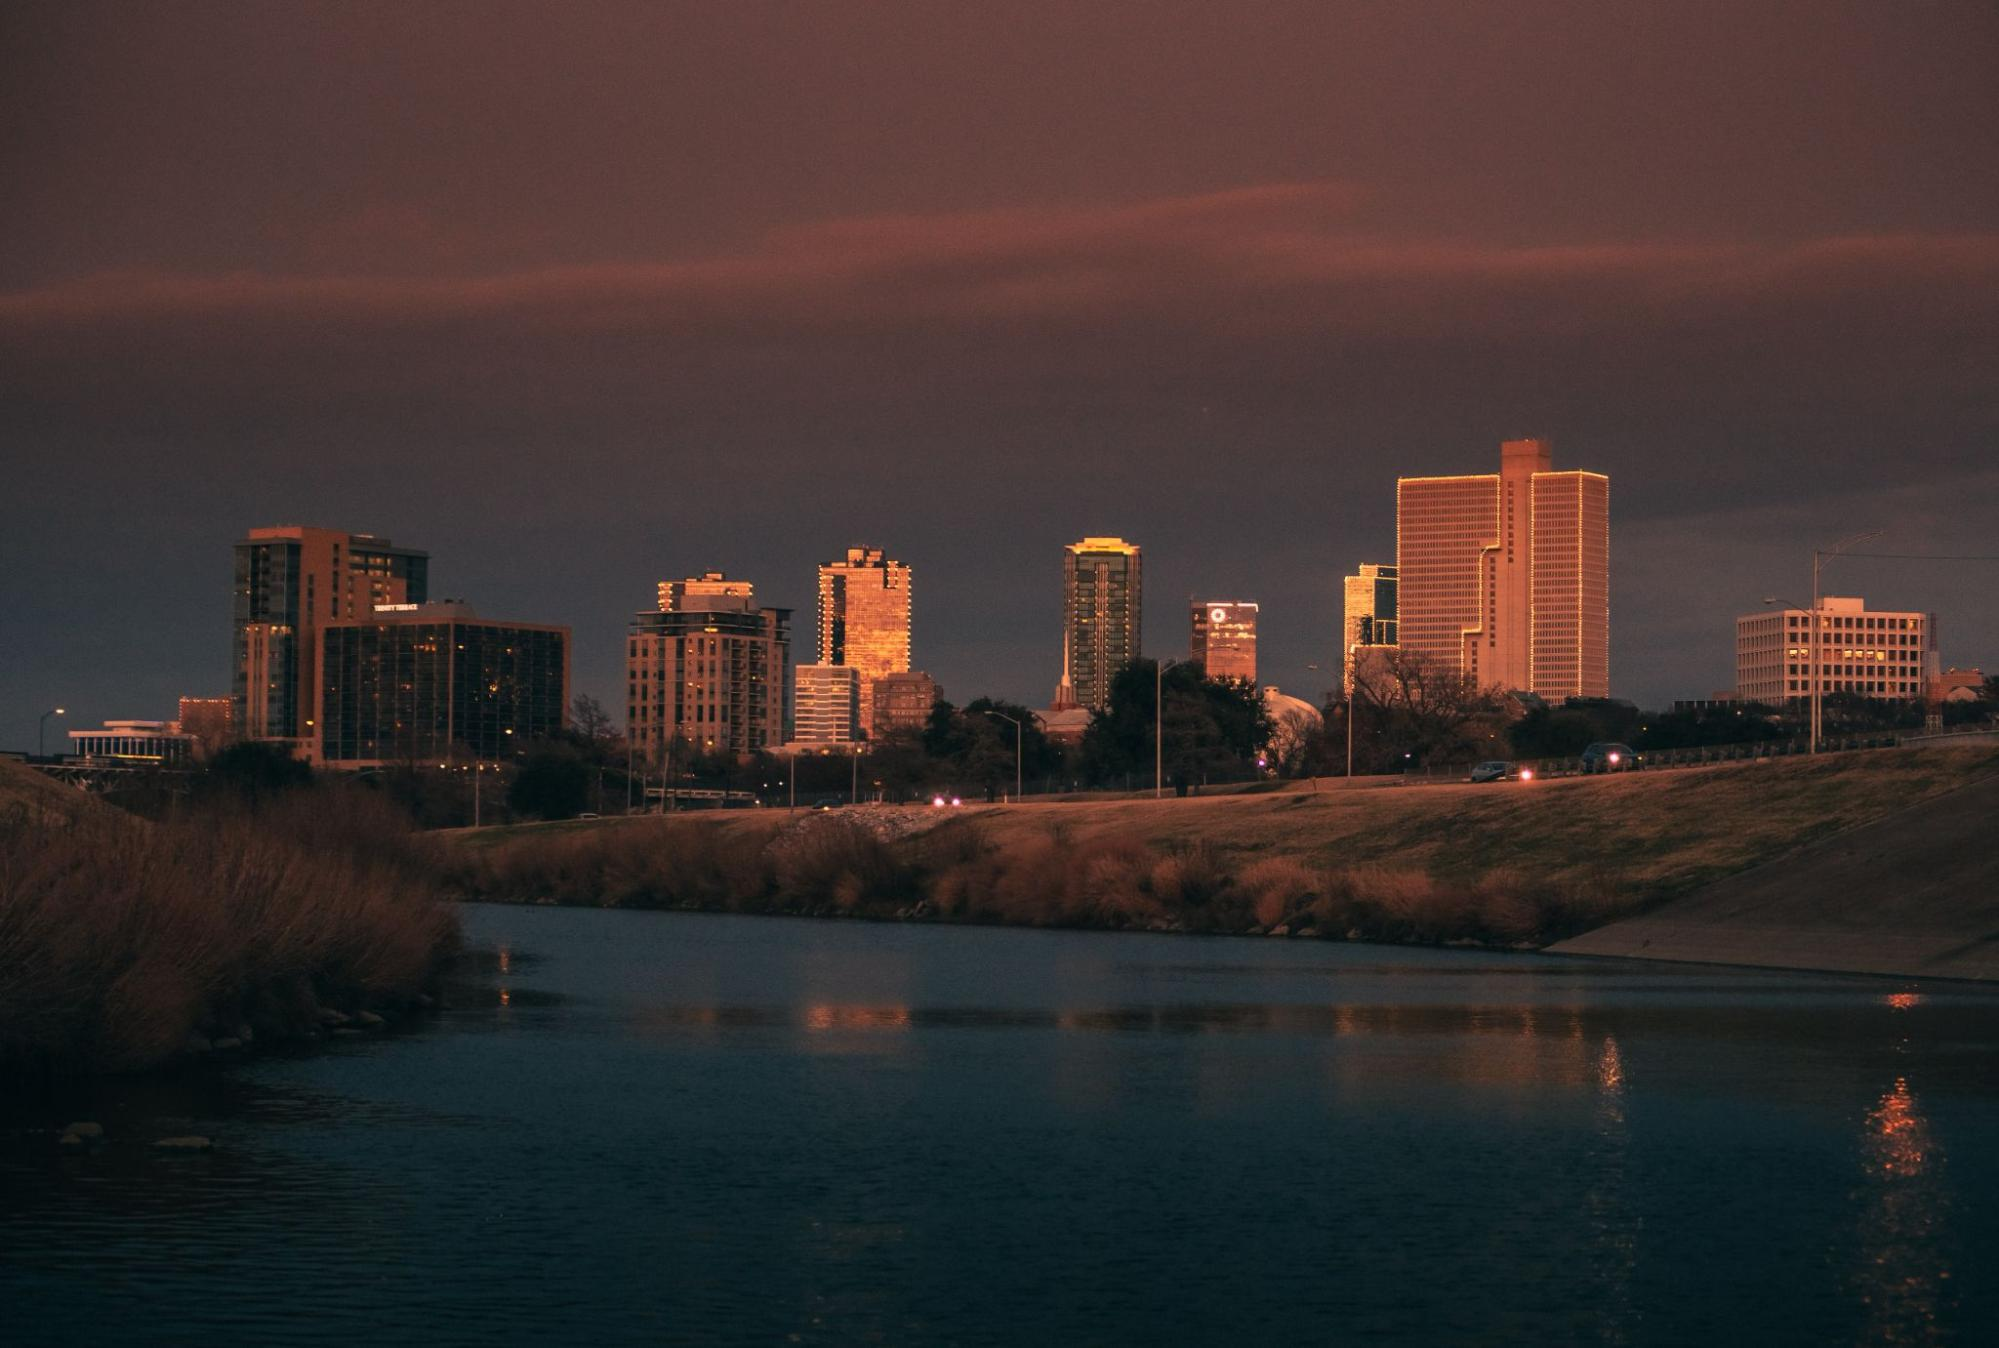 The sun setting over the skyline in Fort Worth, Texas.